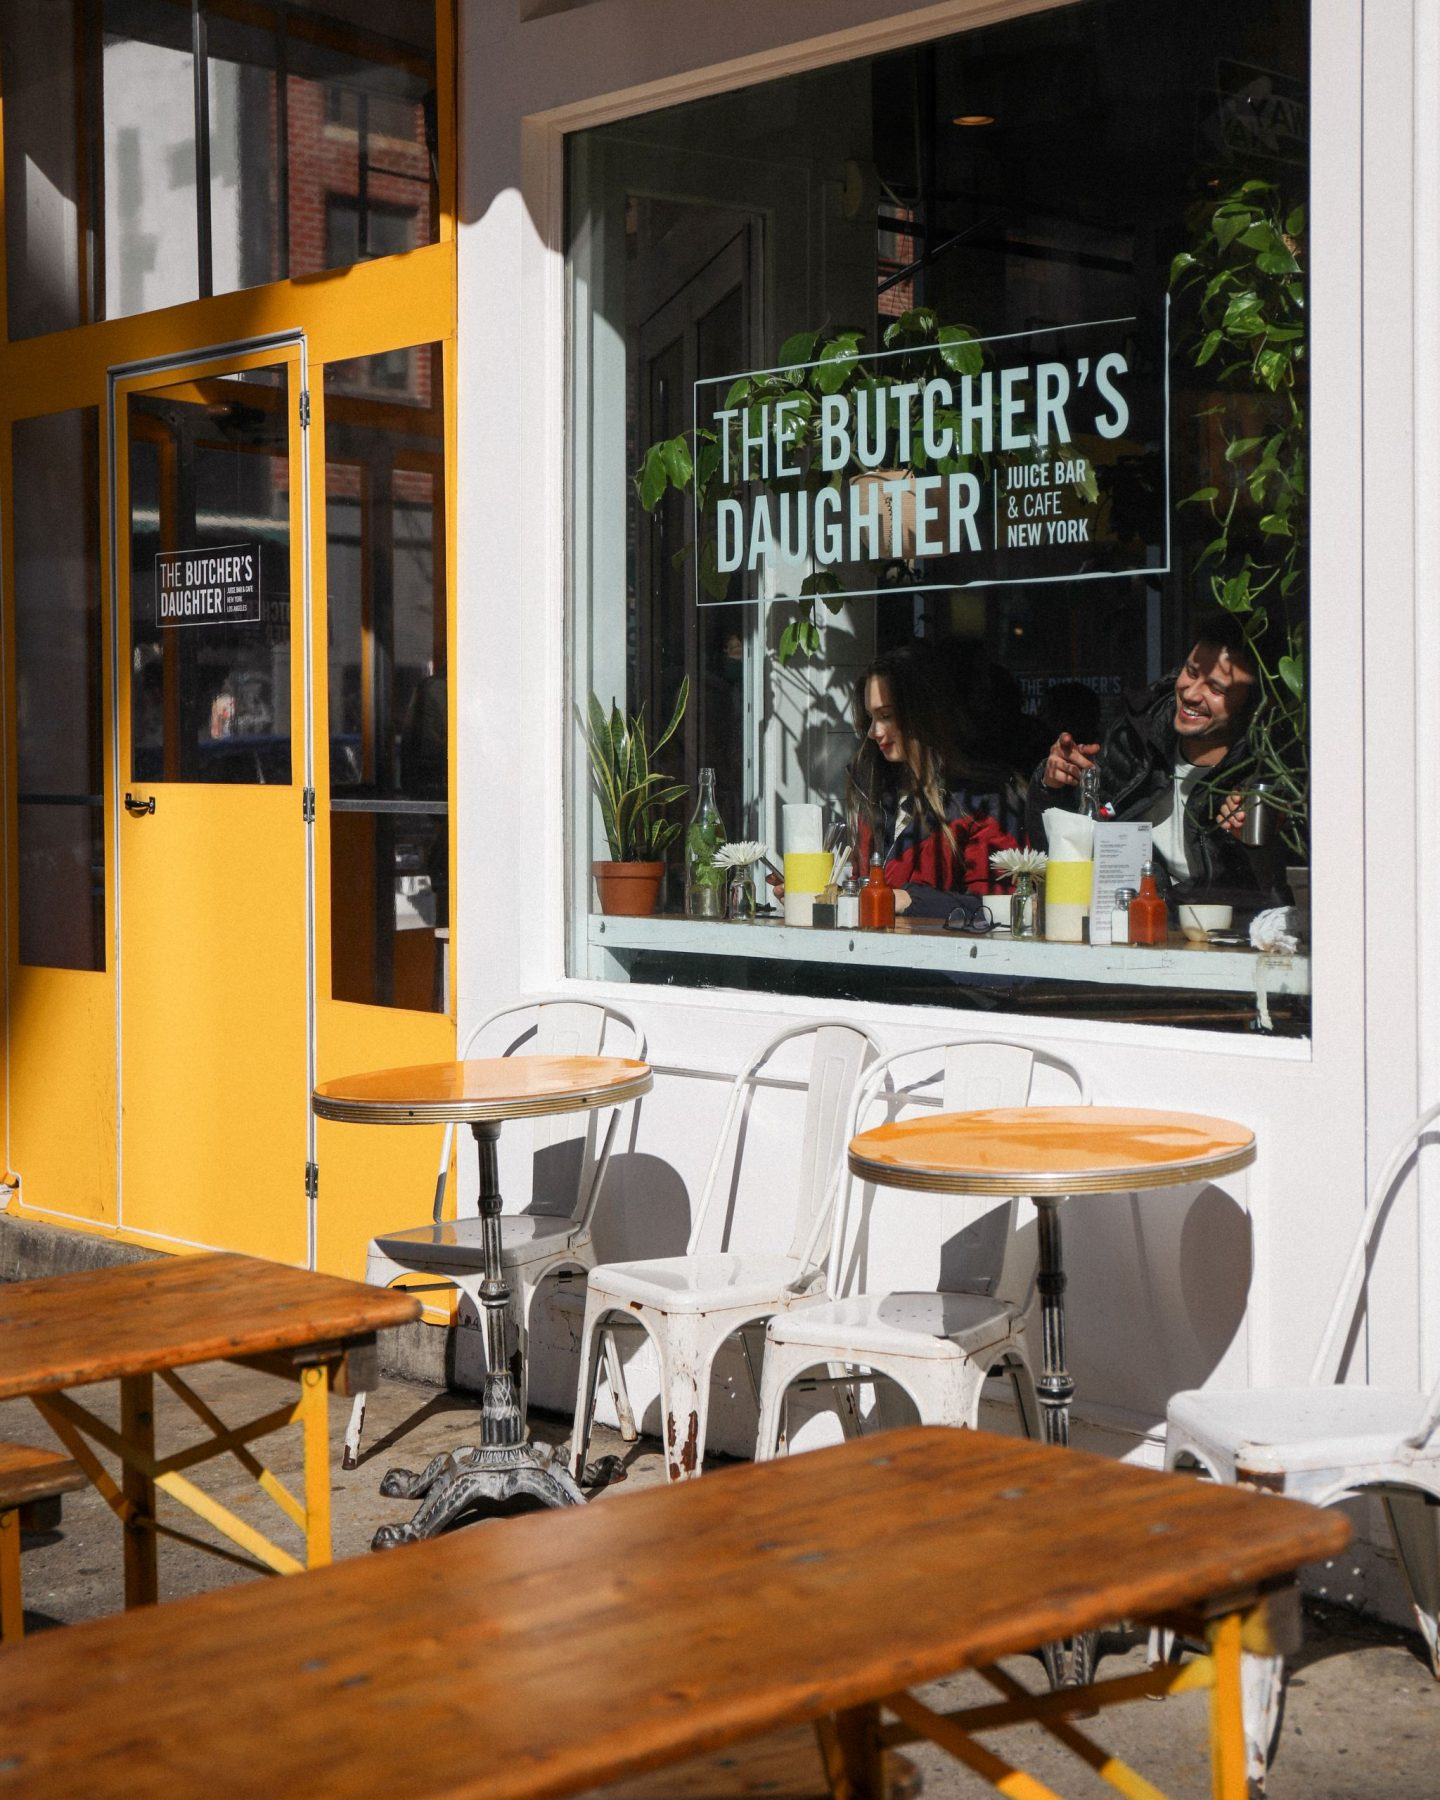 The Butcher's Daughter, Nolita, New York, Katie Heath, KALANCHOE